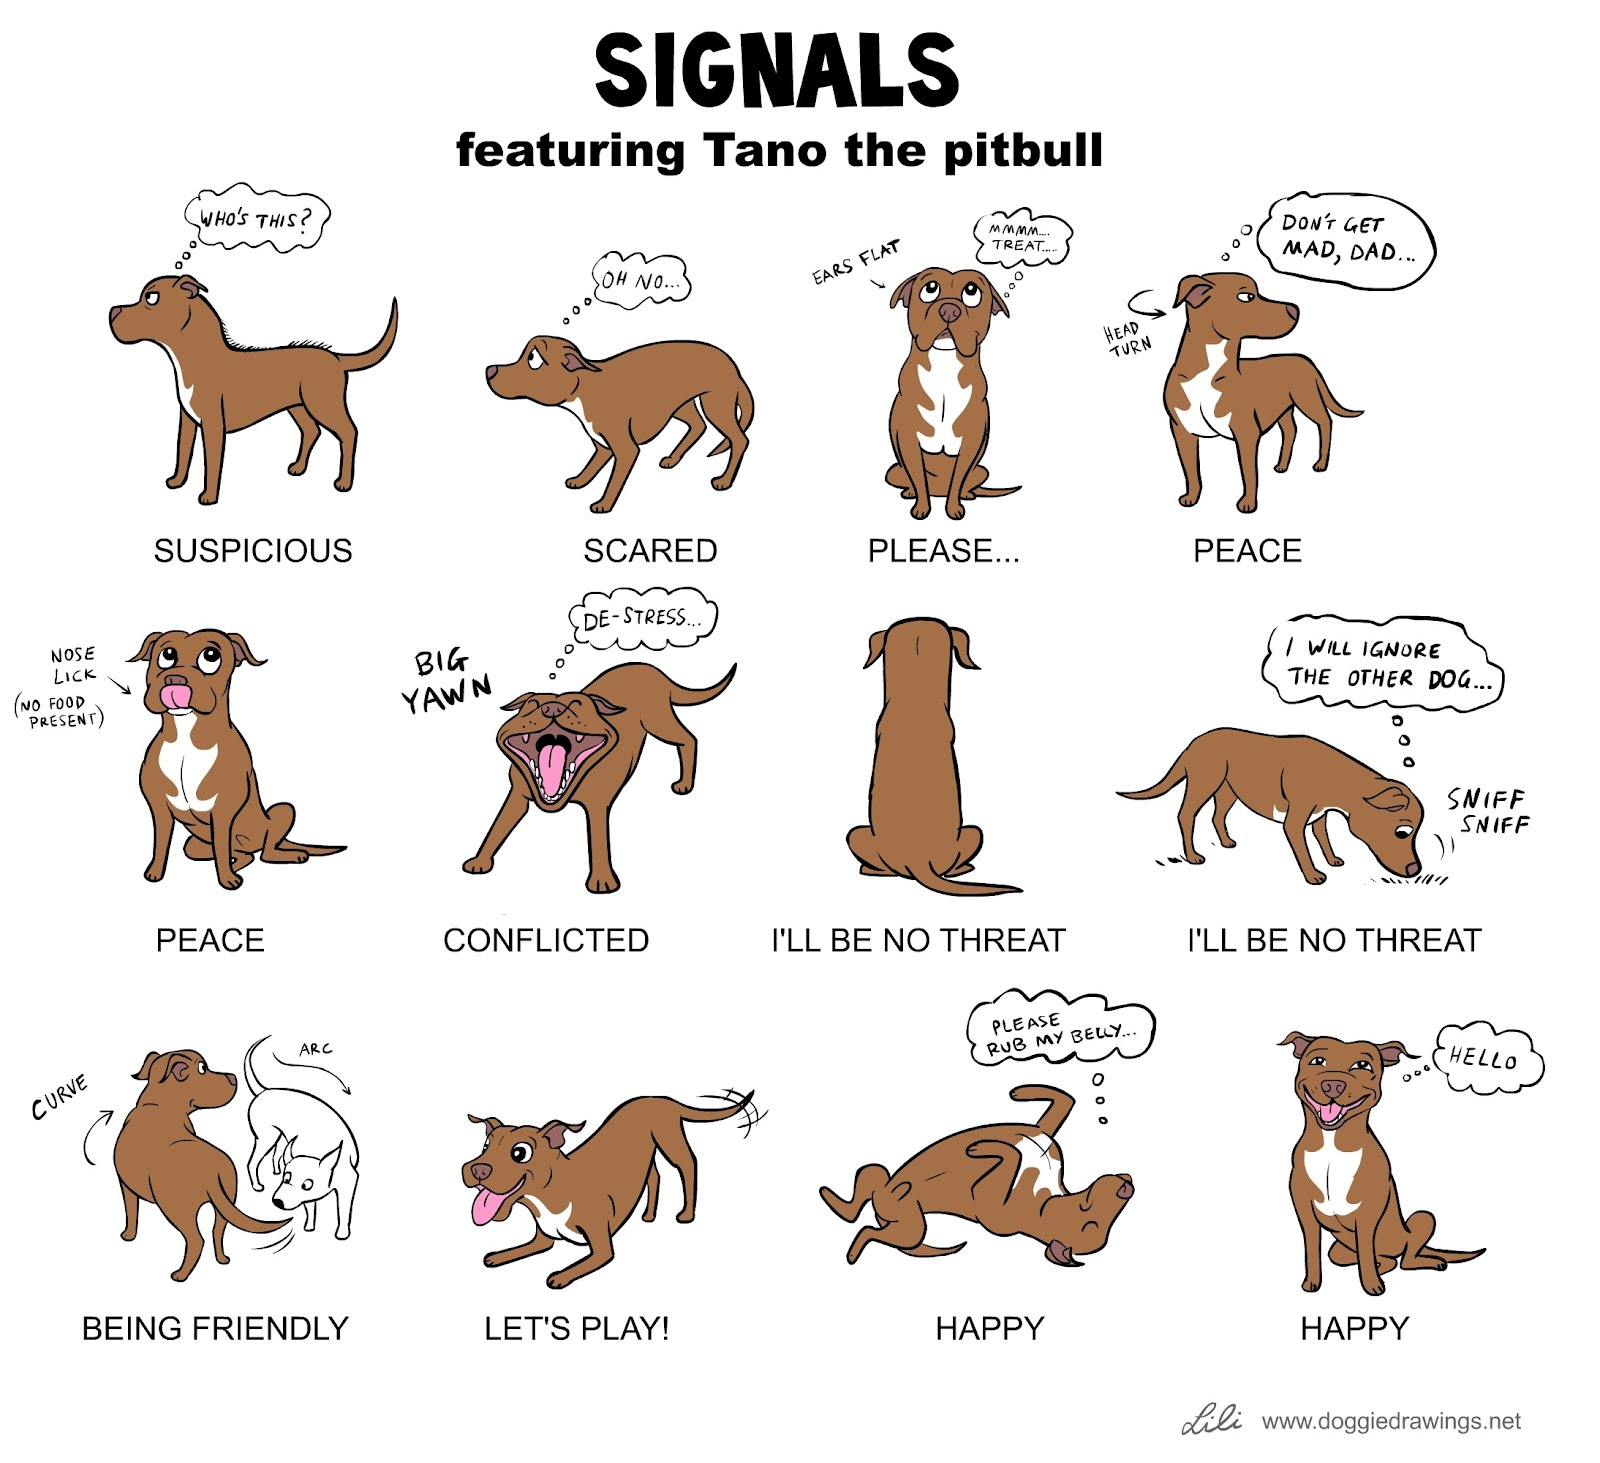 Signals, featuring Tano the pitbull